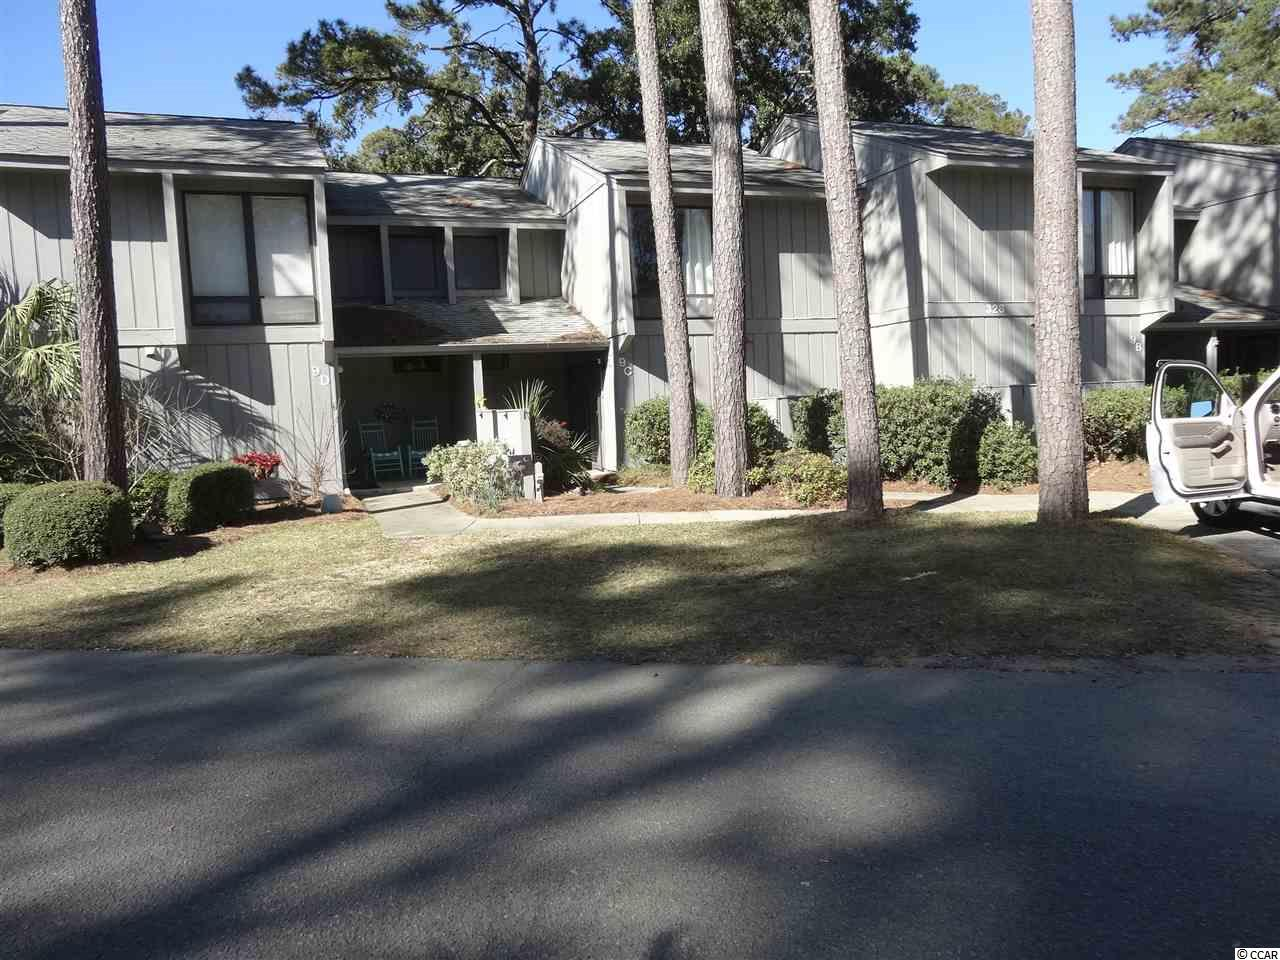 Only 5 minutes to the ocean at Litchfield Beach, SC. This 2-story condominium  is move-in ready! Featuring 3 bedrooms, 2.5 baths. Dining room with glass sliding door that opens to patio. Salt Marsh Cove is a well maintained community with  dock on creek, a swimming pool, clubhouse and is conveniently located near shopping, restaurants....and the beach!  Wifi and cable TV are included.